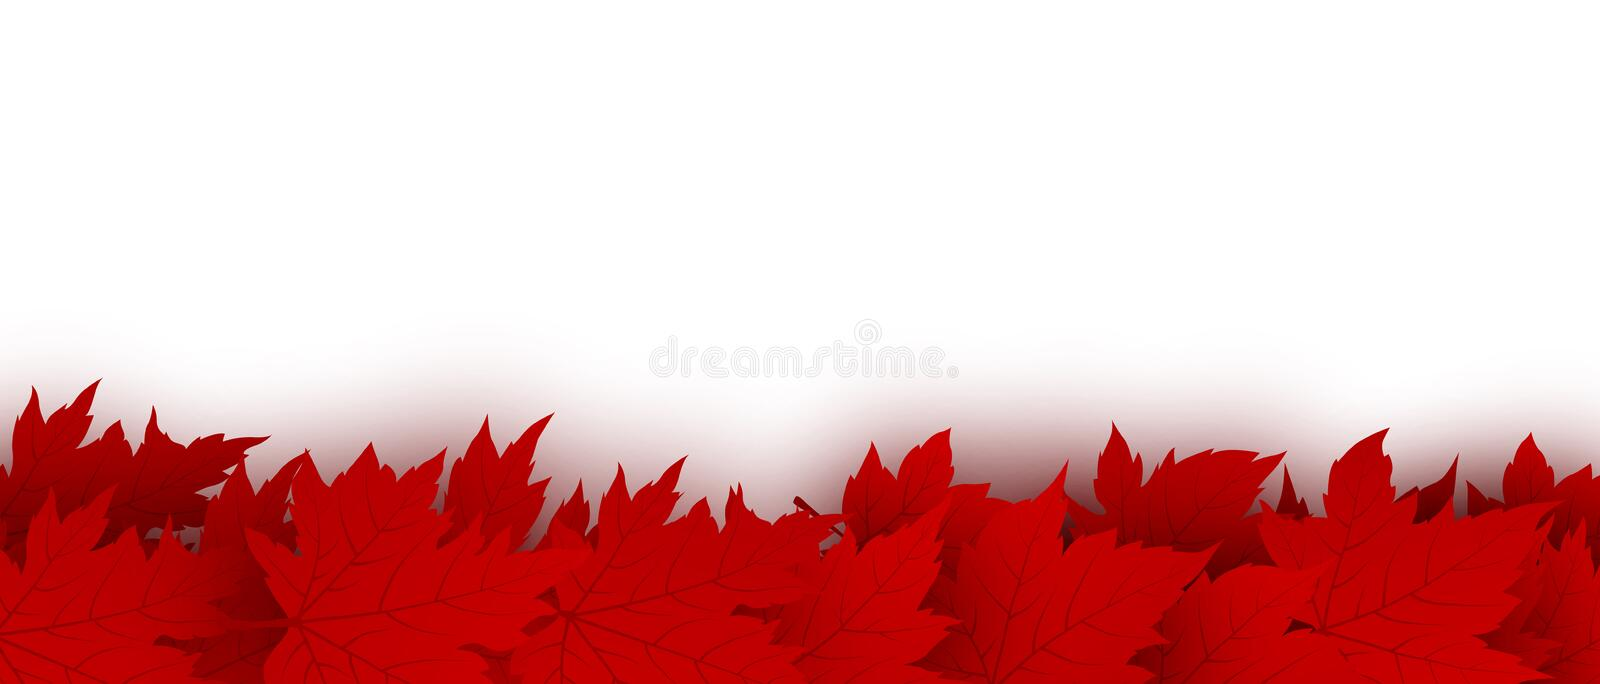 Canada day background design of red maple leaves stock illustration